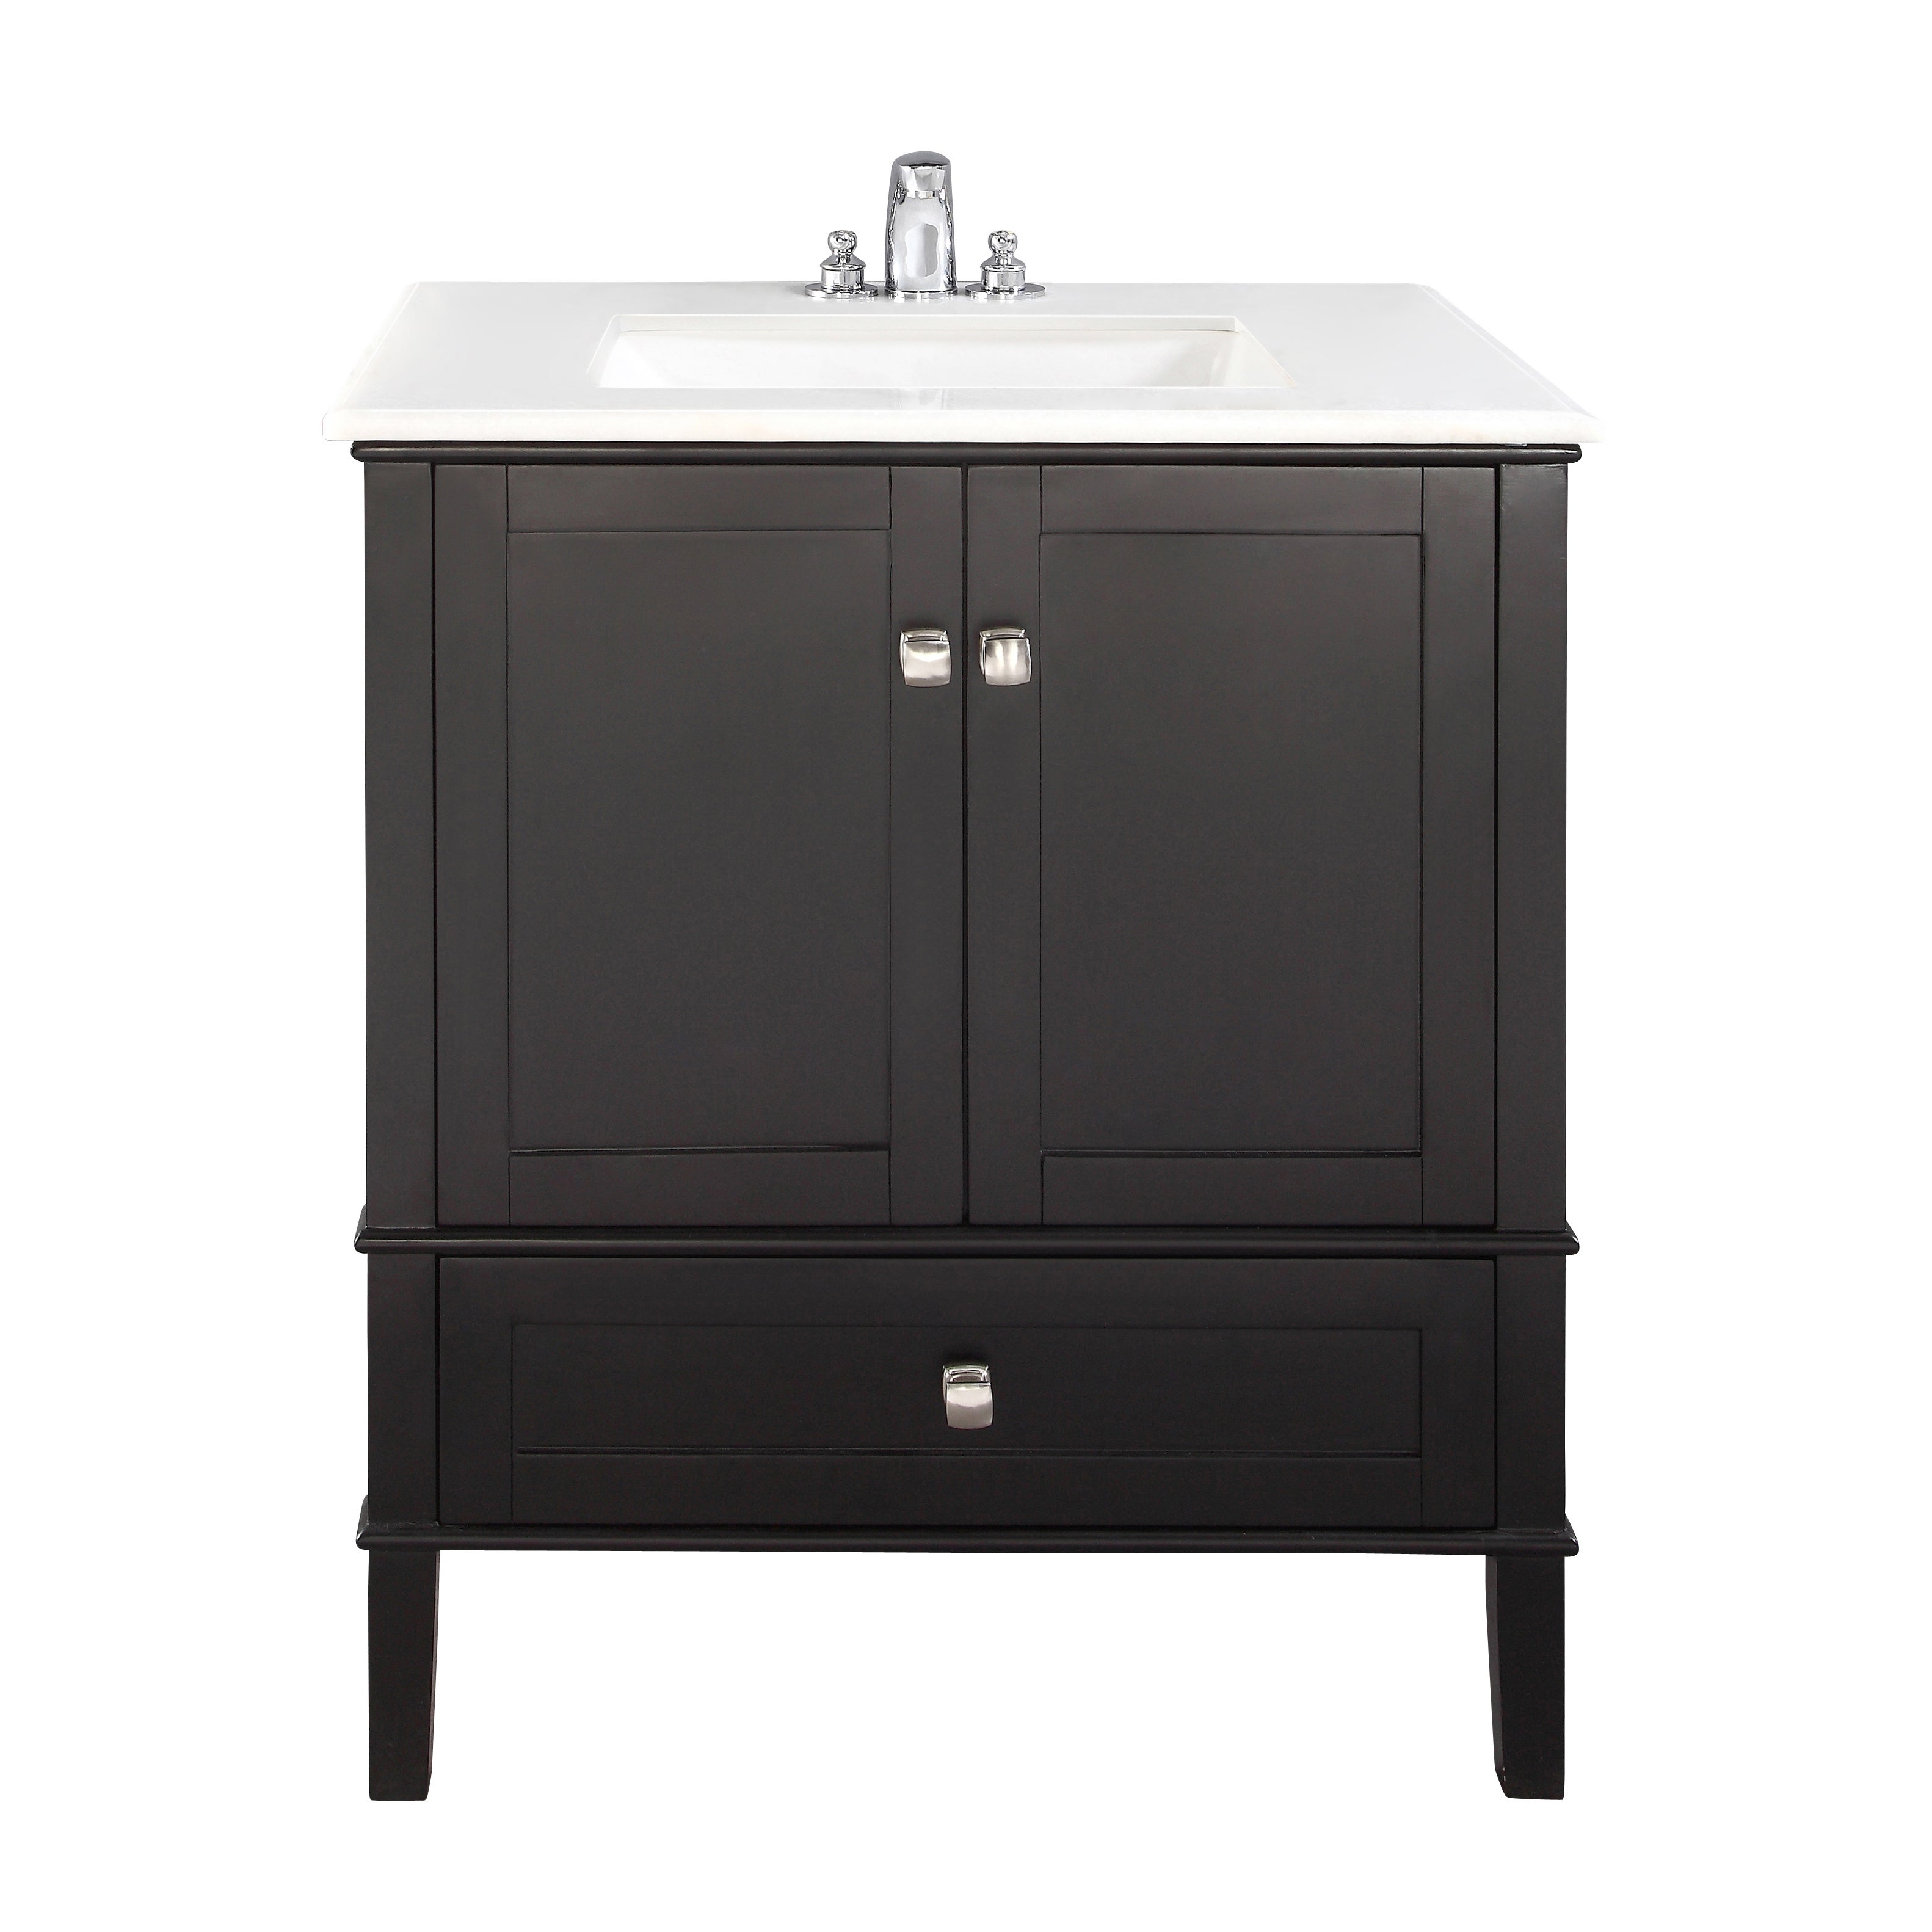 31 inch bathroom vanity. WYNDENHALL Windham Black 30-inch 2-door Bath Vanity Set With Bottom Drawer And White Quartz Marble Top - Free Shipping Today Overstock 14311911 31 Inch Bathroom